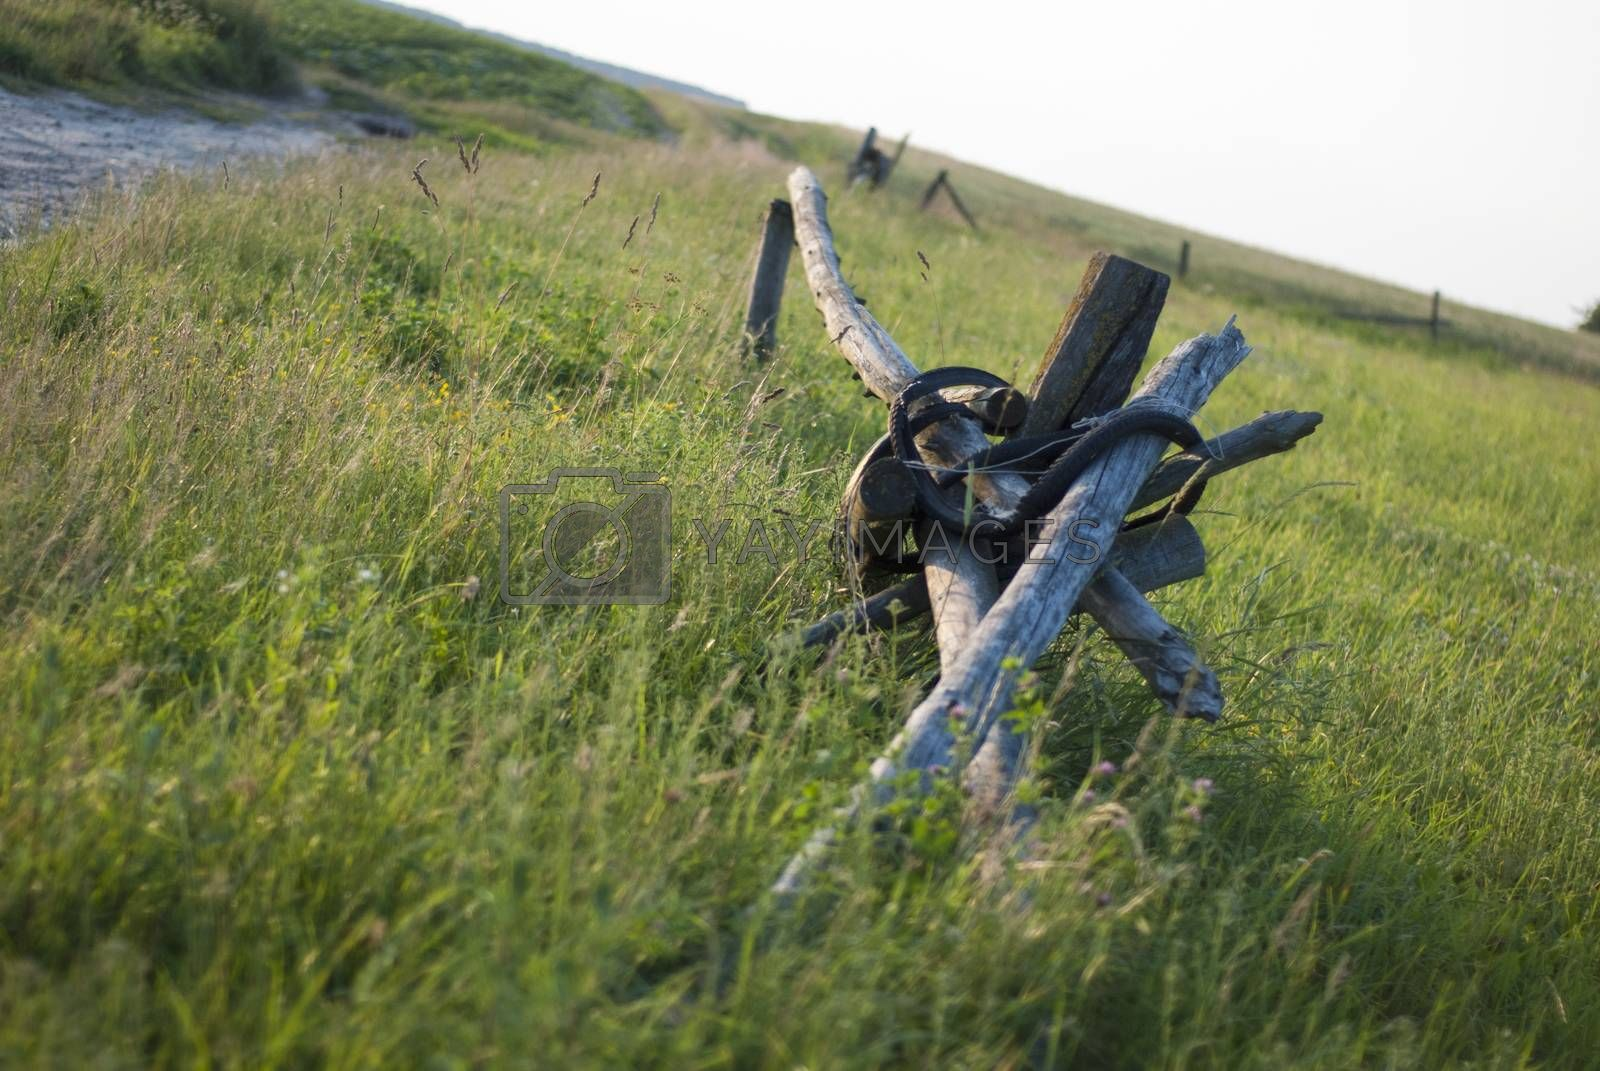 Royalty free image of Old fence in field by Morfey713